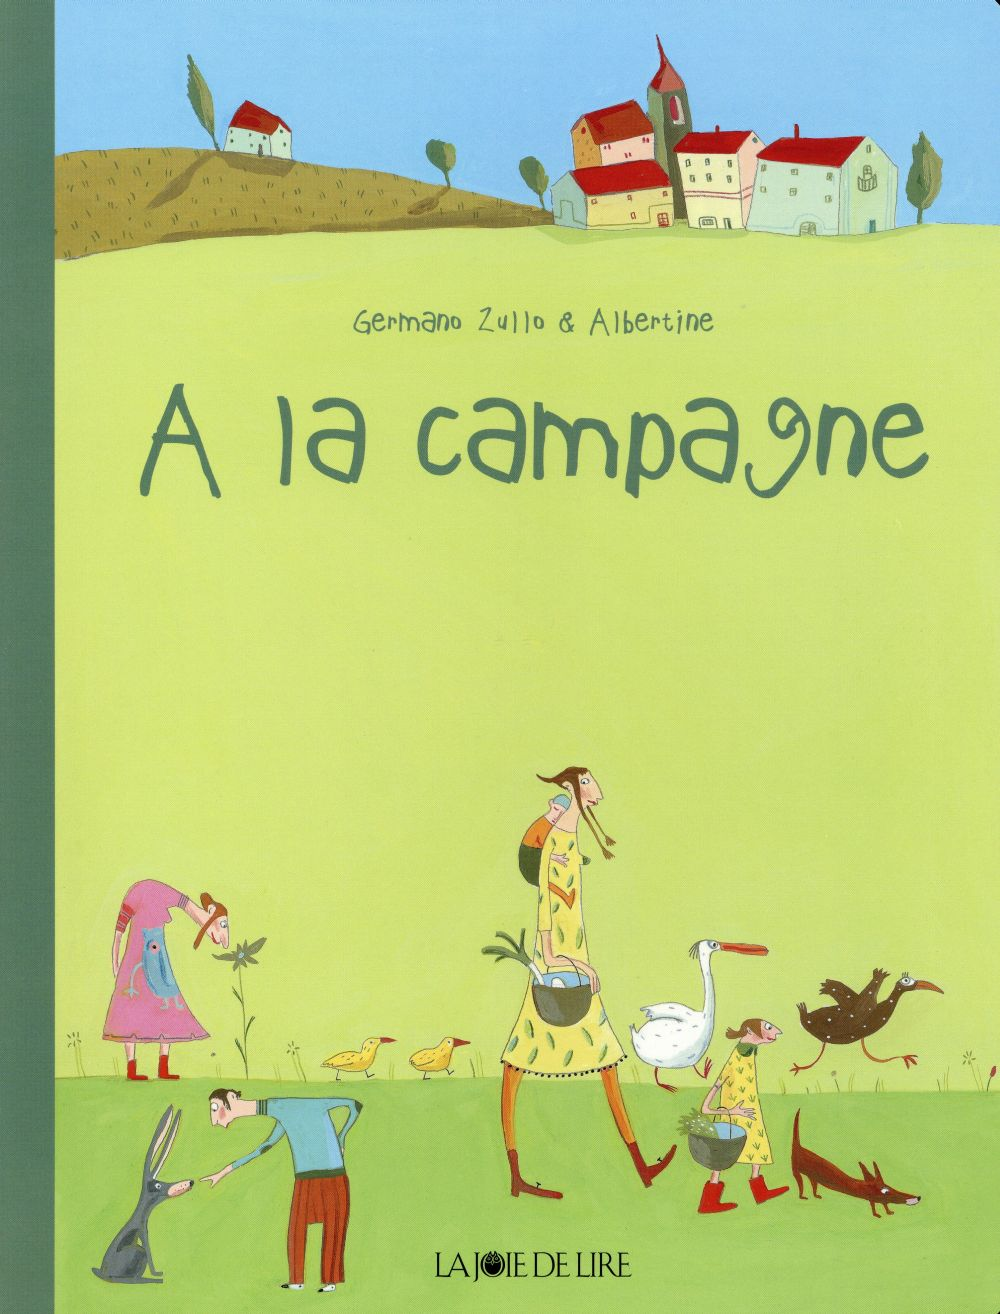 A la campagne / Germano Zullo & Albertine | Zullo, Germano (1968-....). Auteur